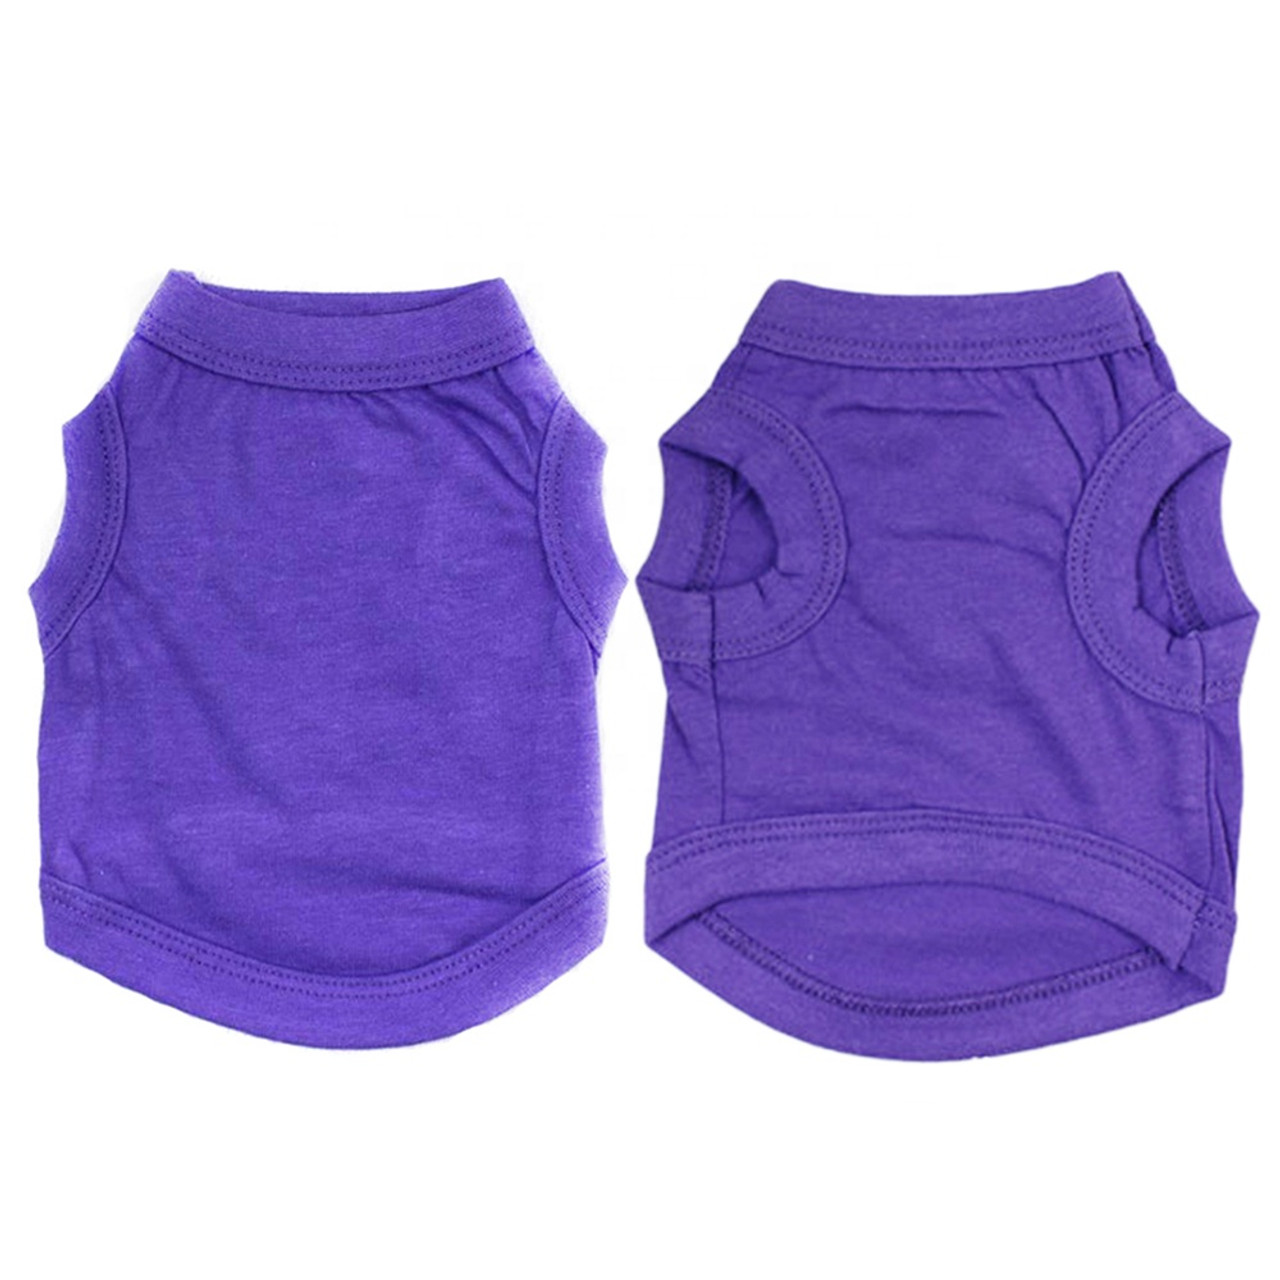 Cotton Sleeveless Tee-Buy 3 or More For $6.95 each